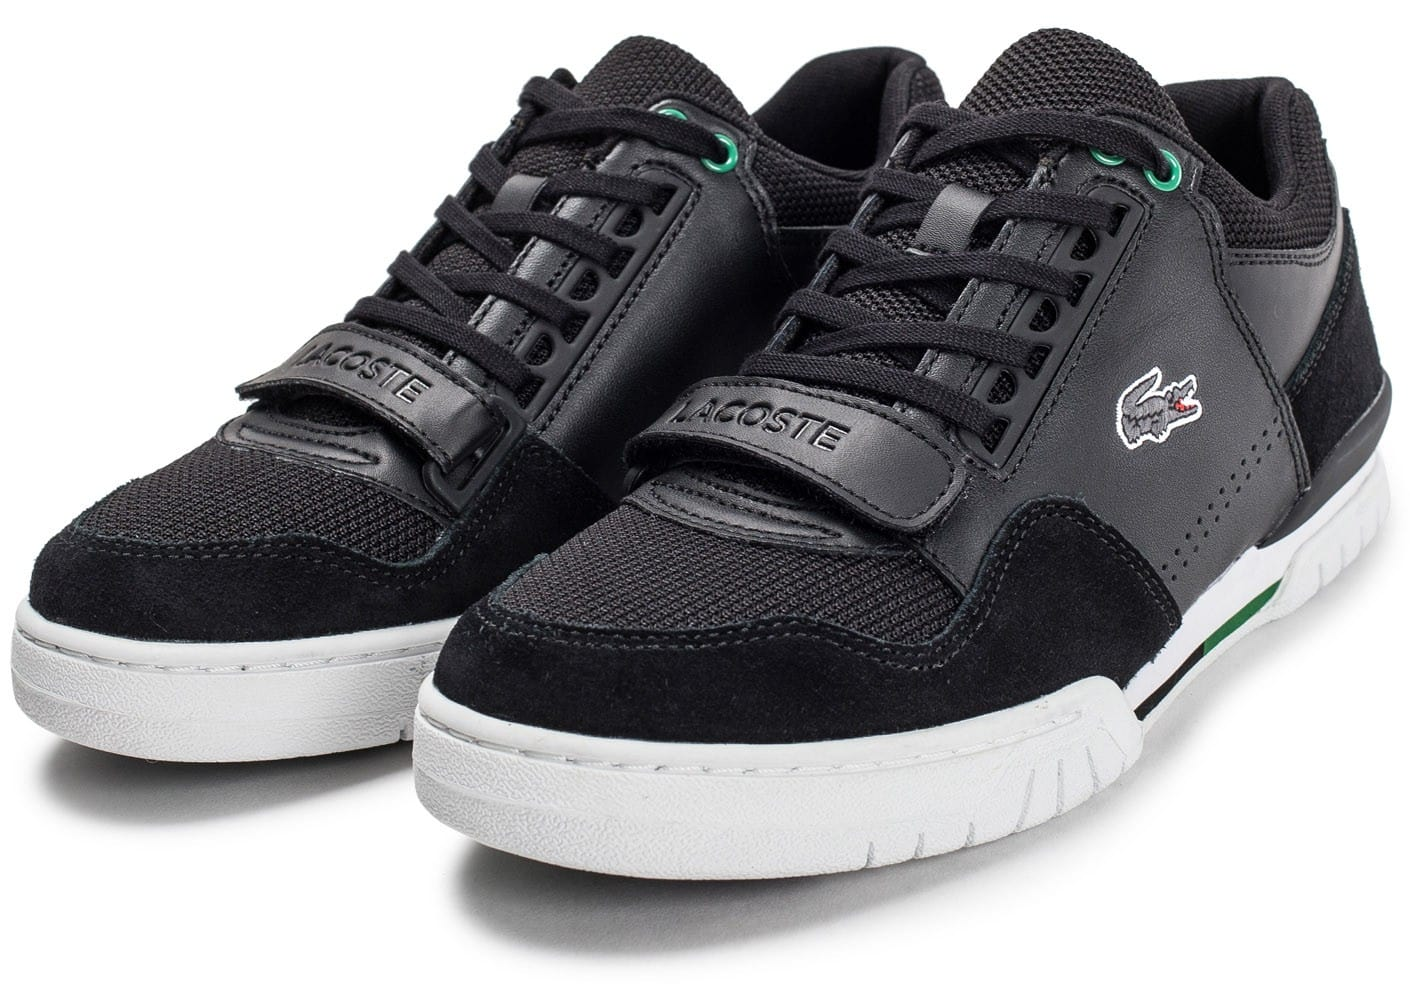 lacoste missouri noire chaussures homme chausport. Black Bedroom Furniture Sets. Home Design Ideas